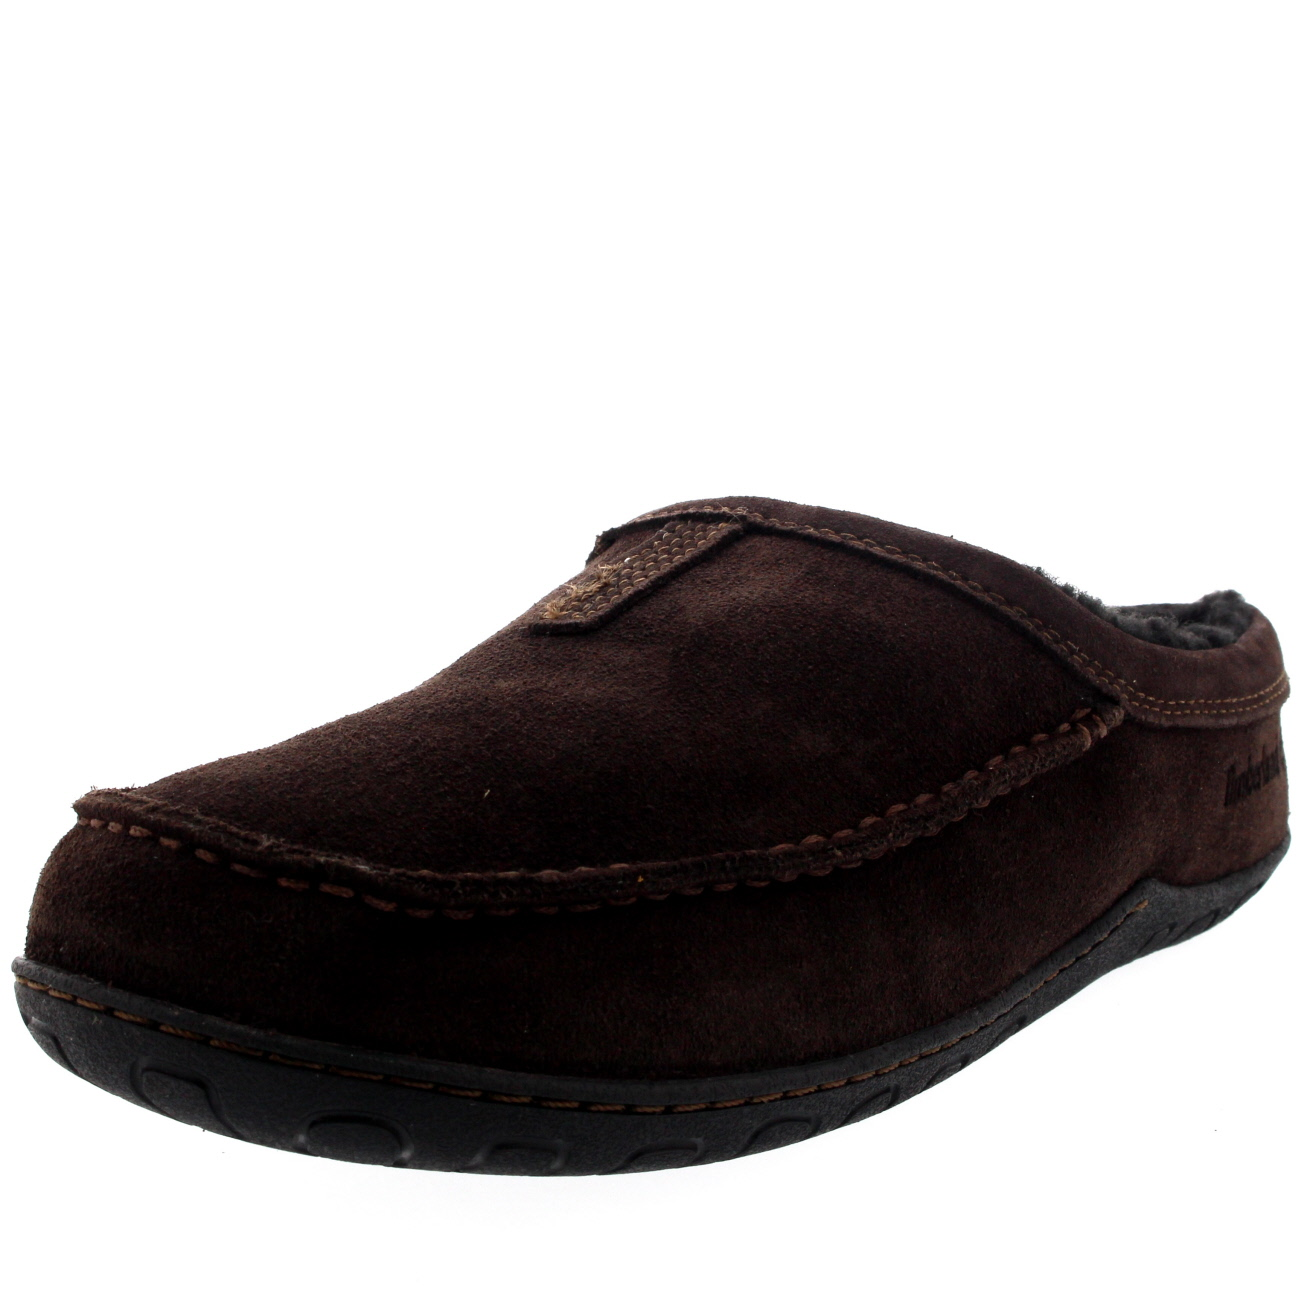 homme timberland kick around mule cuir fourrure mules hiver chaussure pantoufle toutes tailles. Black Bedroom Furniture Sets. Home Design Ideas